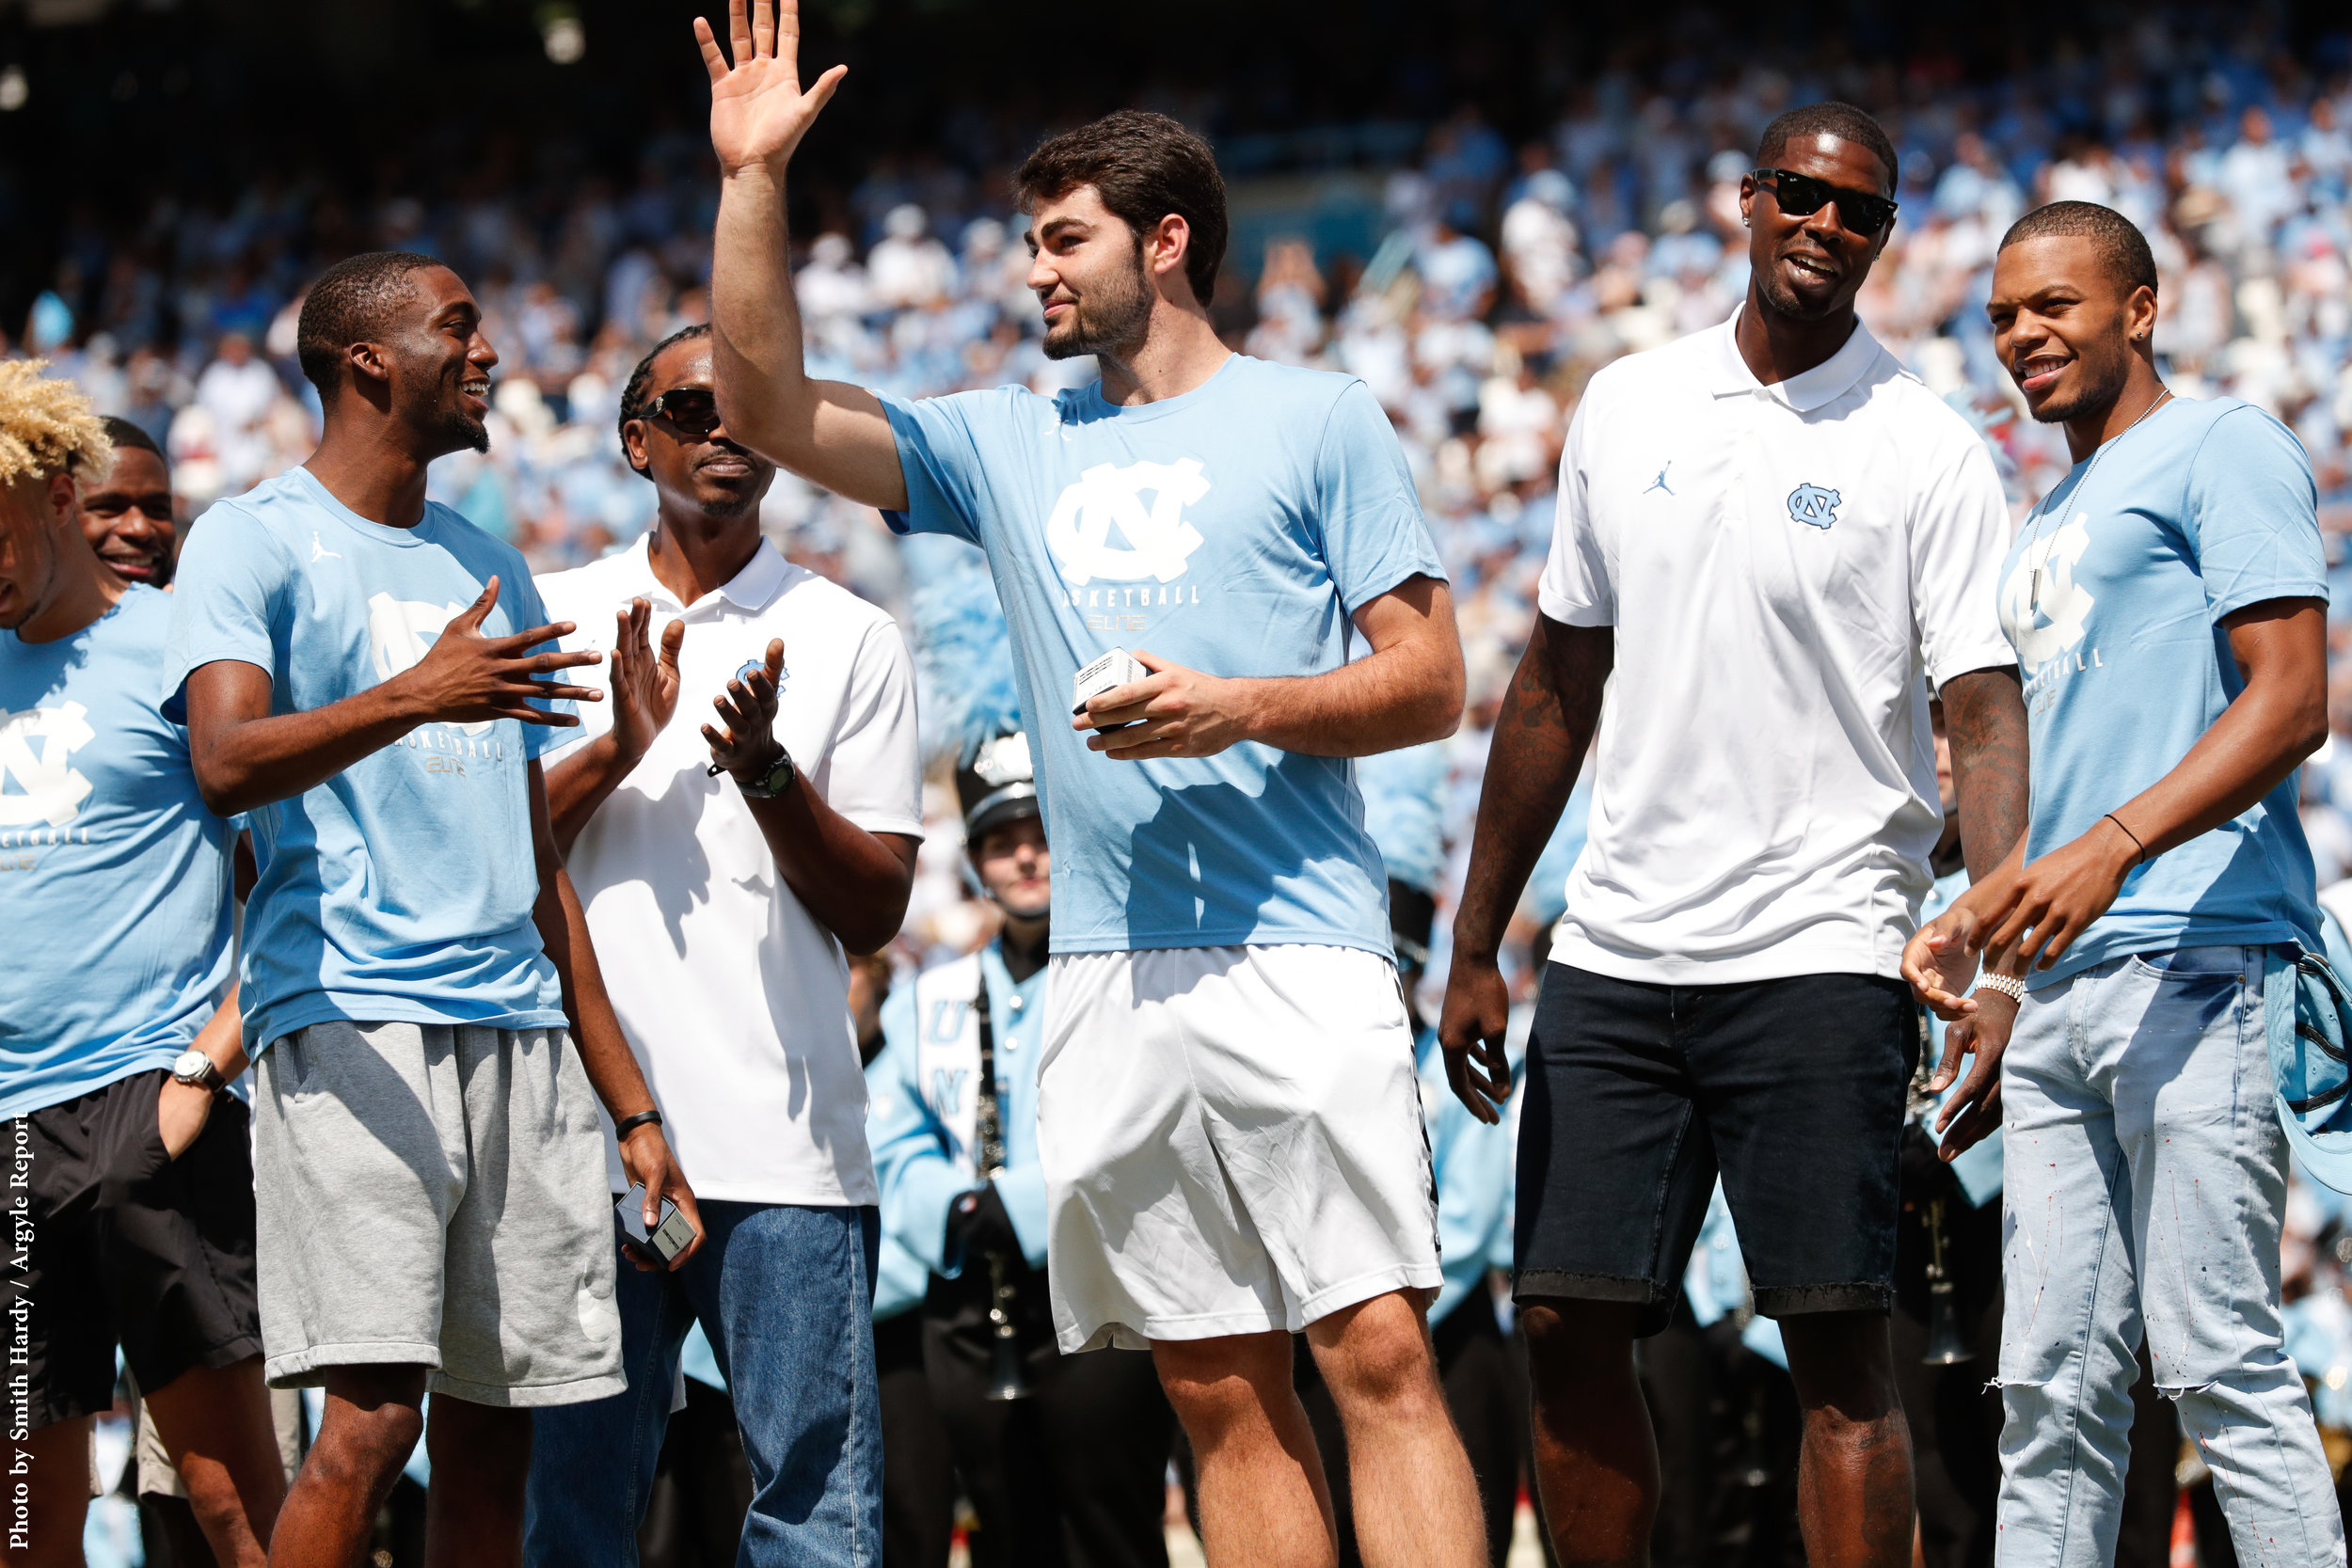 Brandon Robinson, Donald Williams, Luke Maye, Marvin Williams, Nate Britt